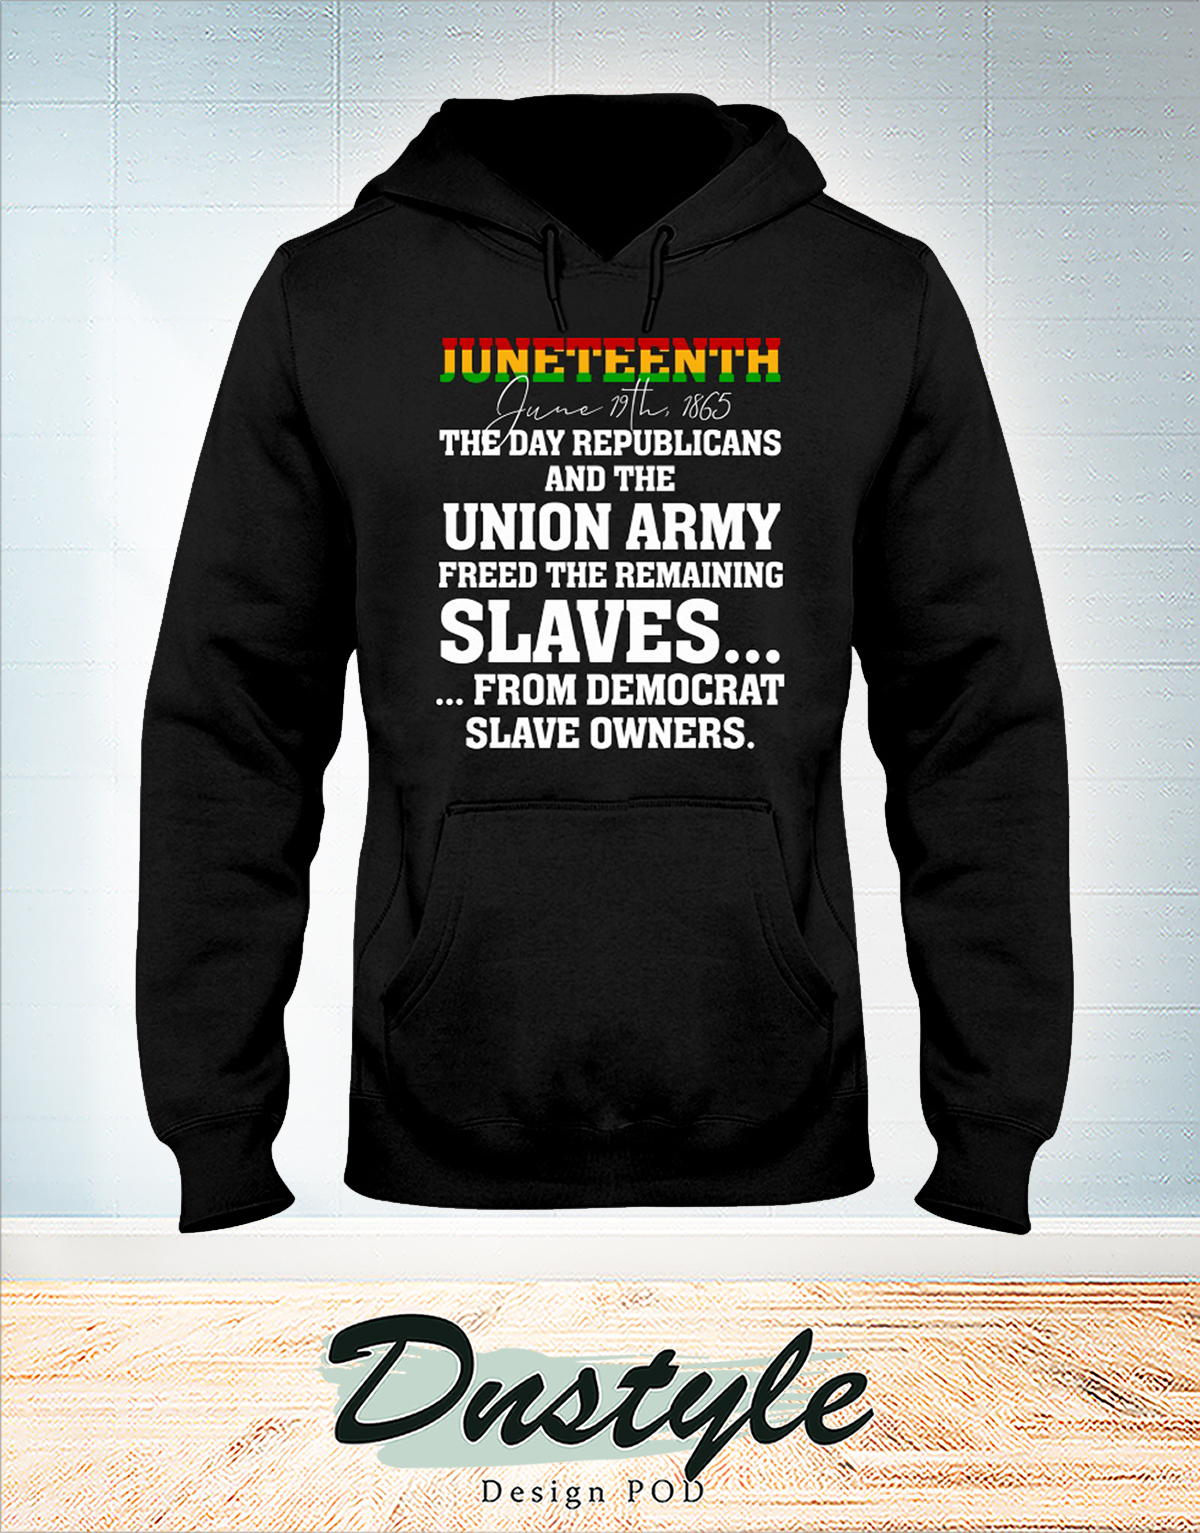 Juneteenth 1865 the day republicans and the union army hoodie